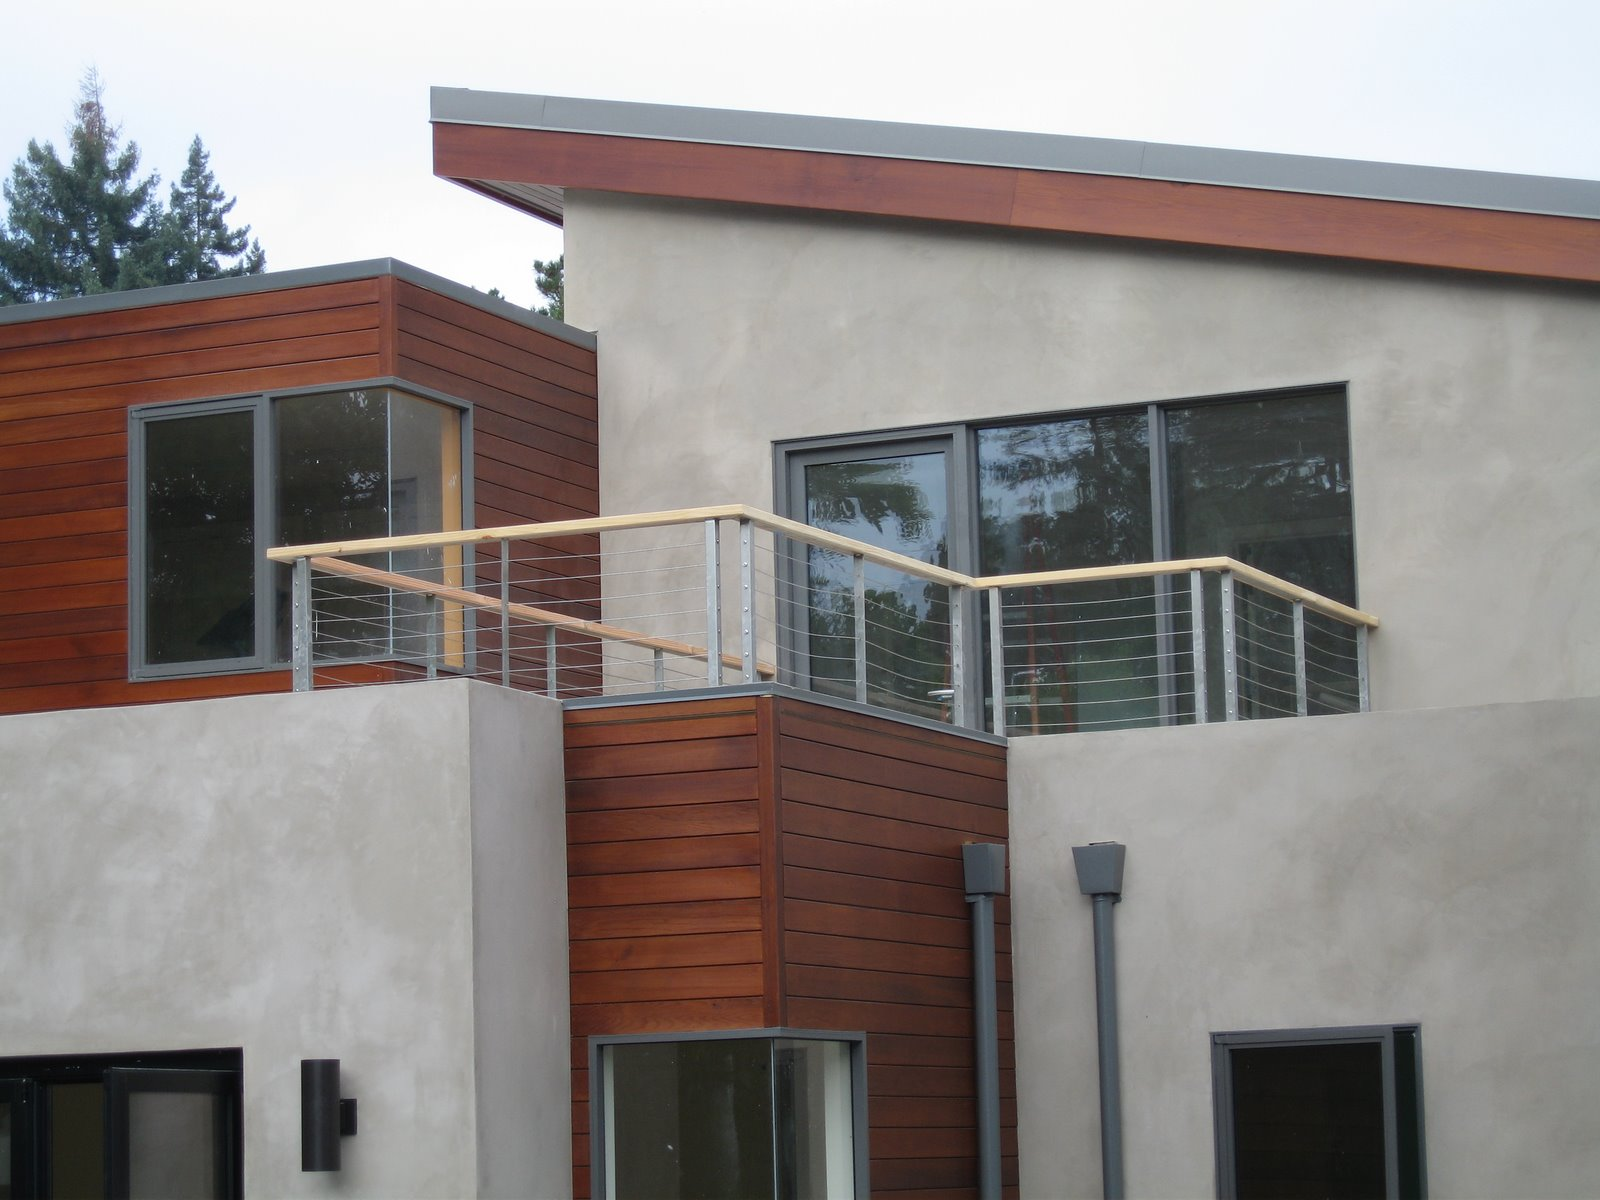 Decorations adorable balcony railing design for modern home ideas using wooden exterior plan how to build a balcony railing for decorative purpos